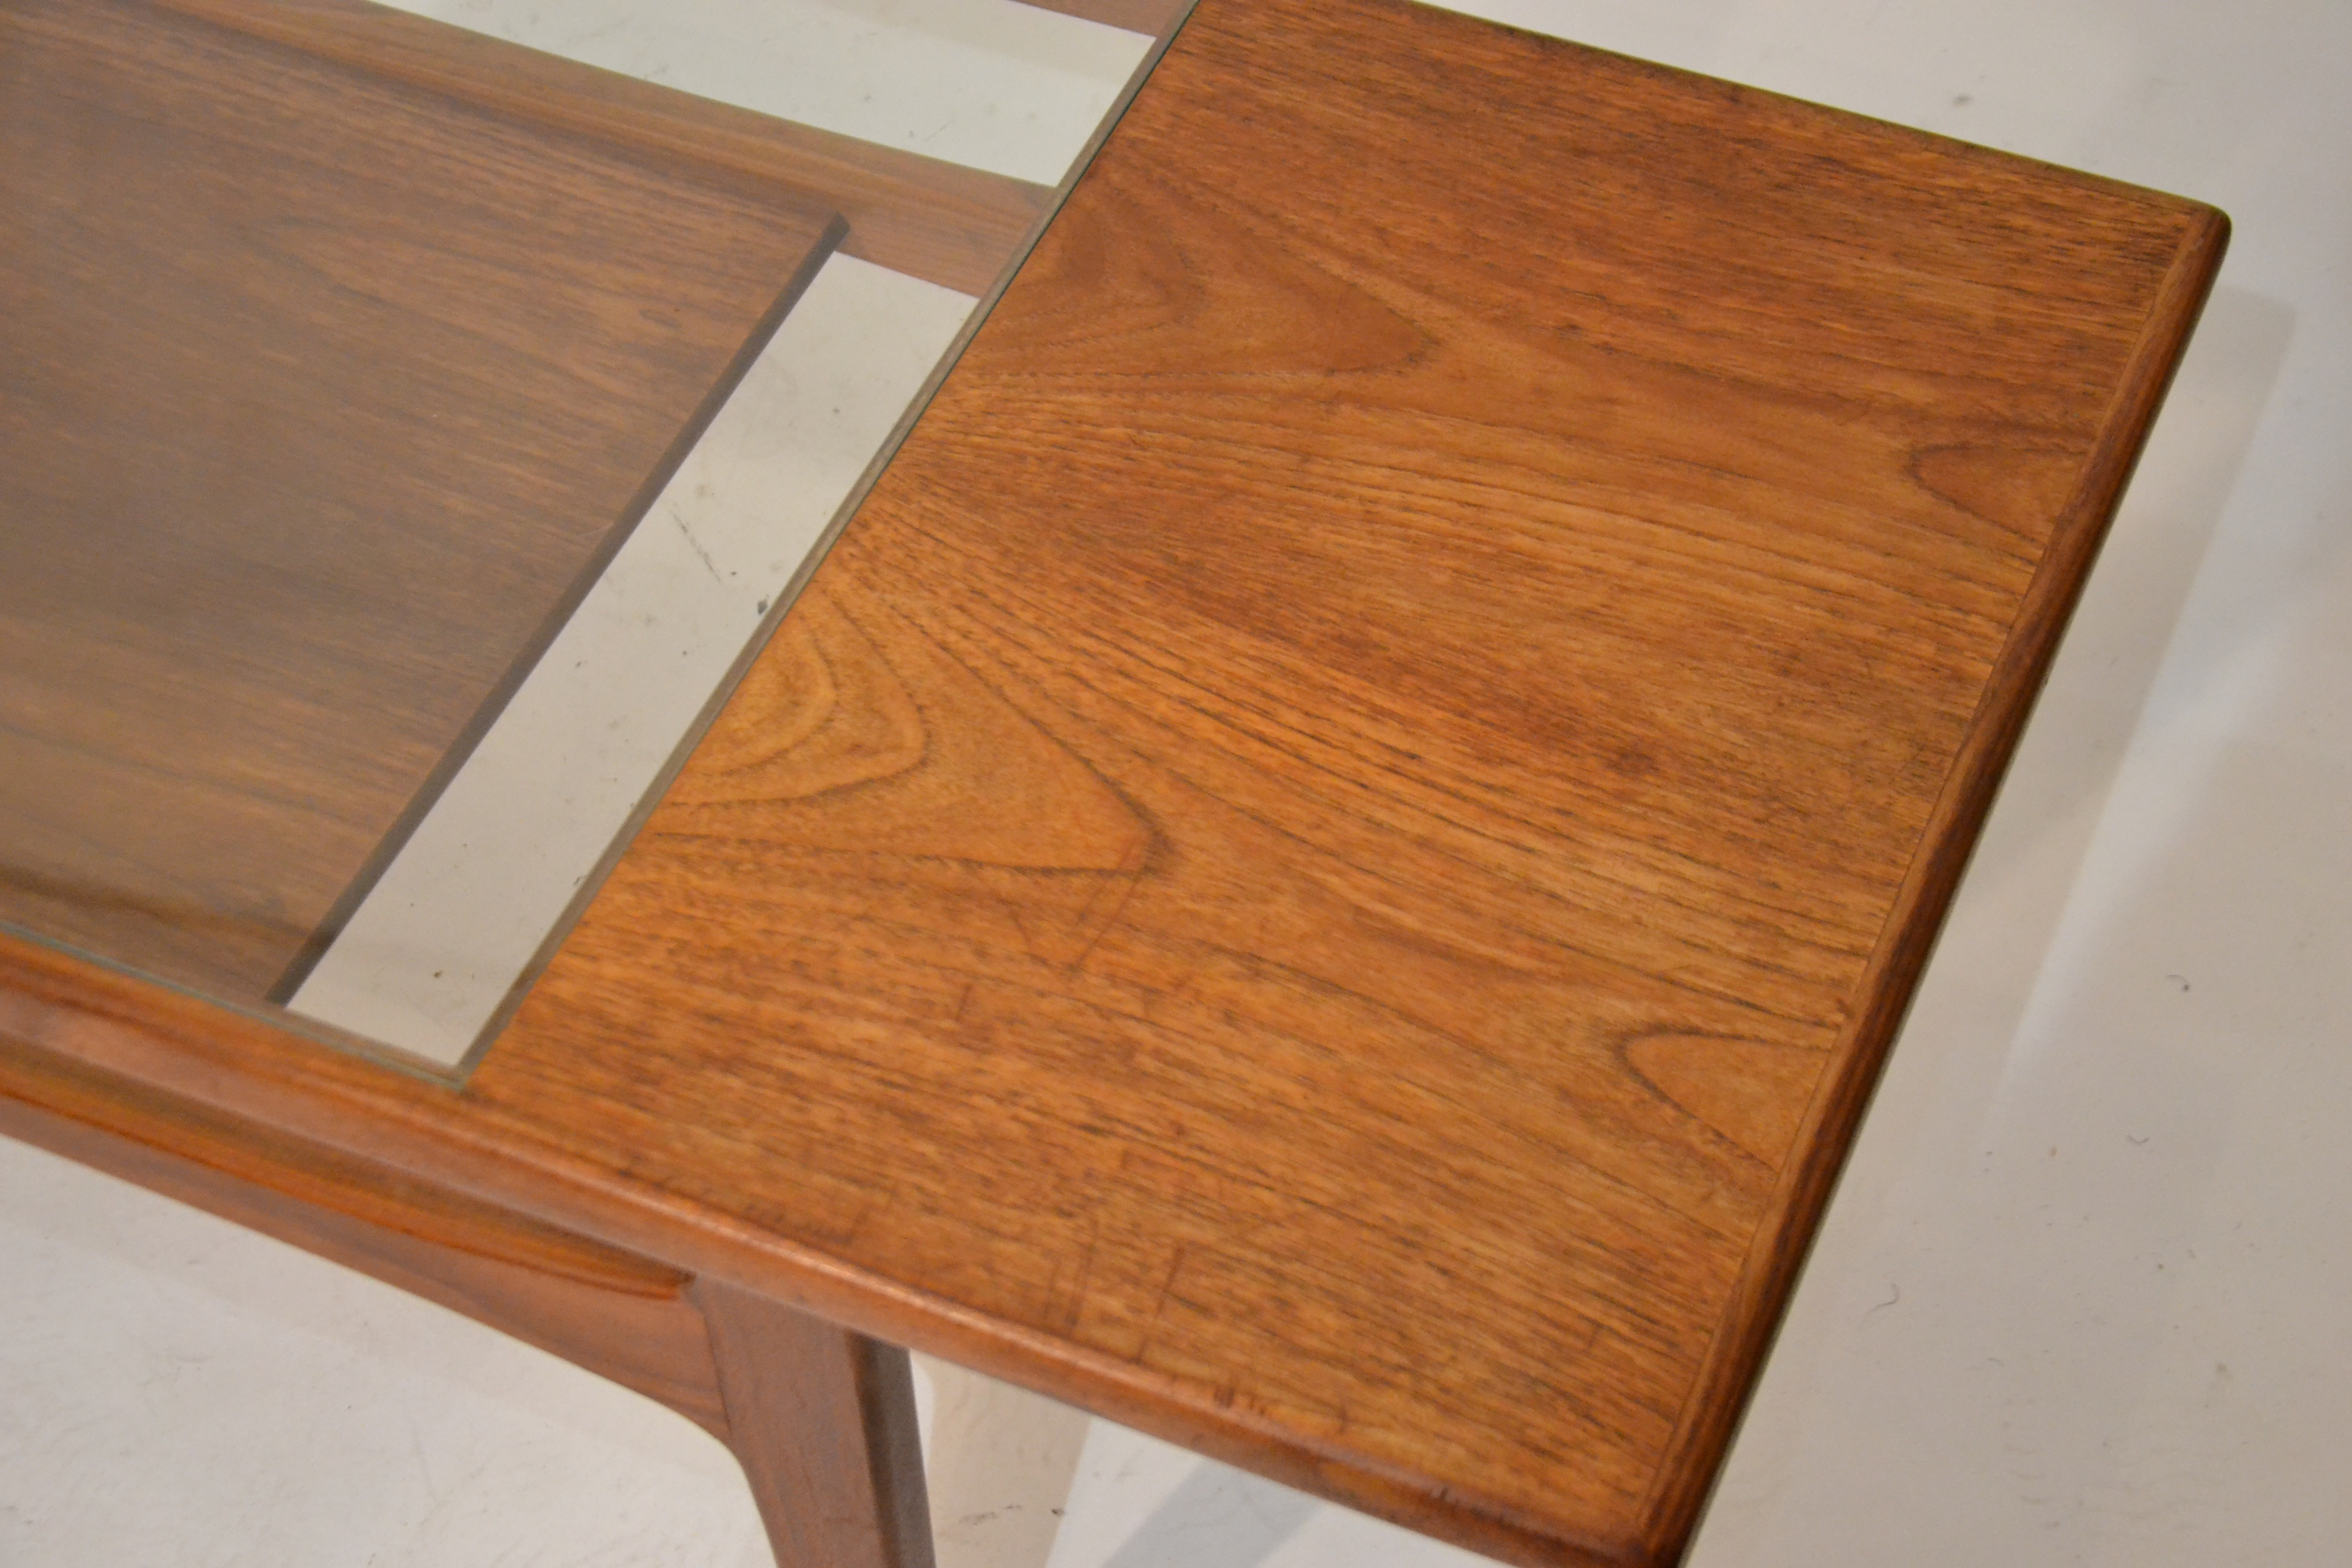 Table Basse Scandinave Verre Table Basse Scandinave Verre Et Teck Bindiesbindies